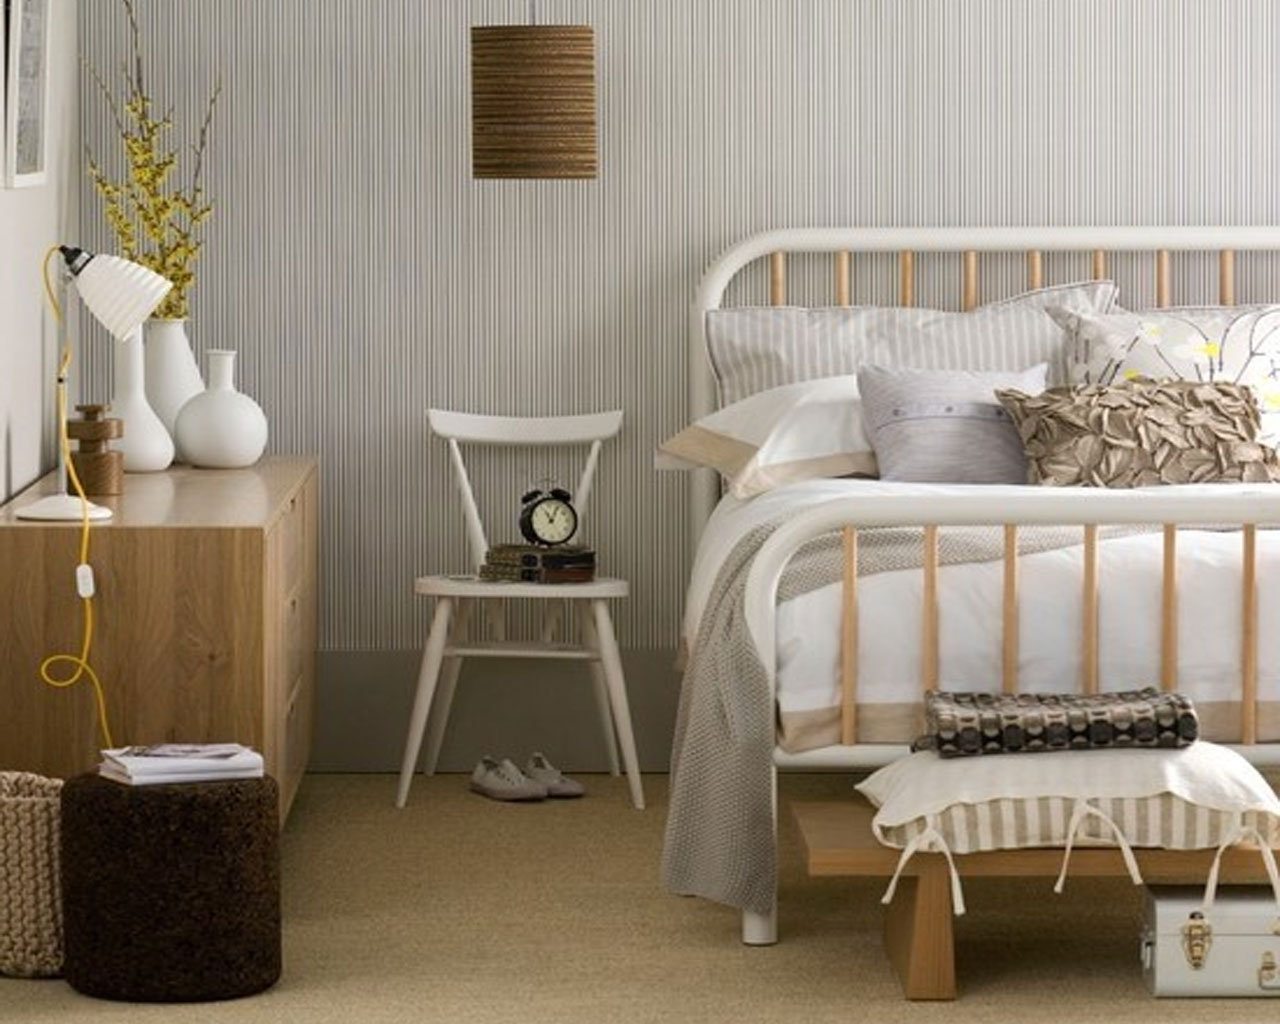 Scandinavisch wonen wit rust natuurlijk industrieel mia domo - Beautiful modern scandinavian bedroom designs ...